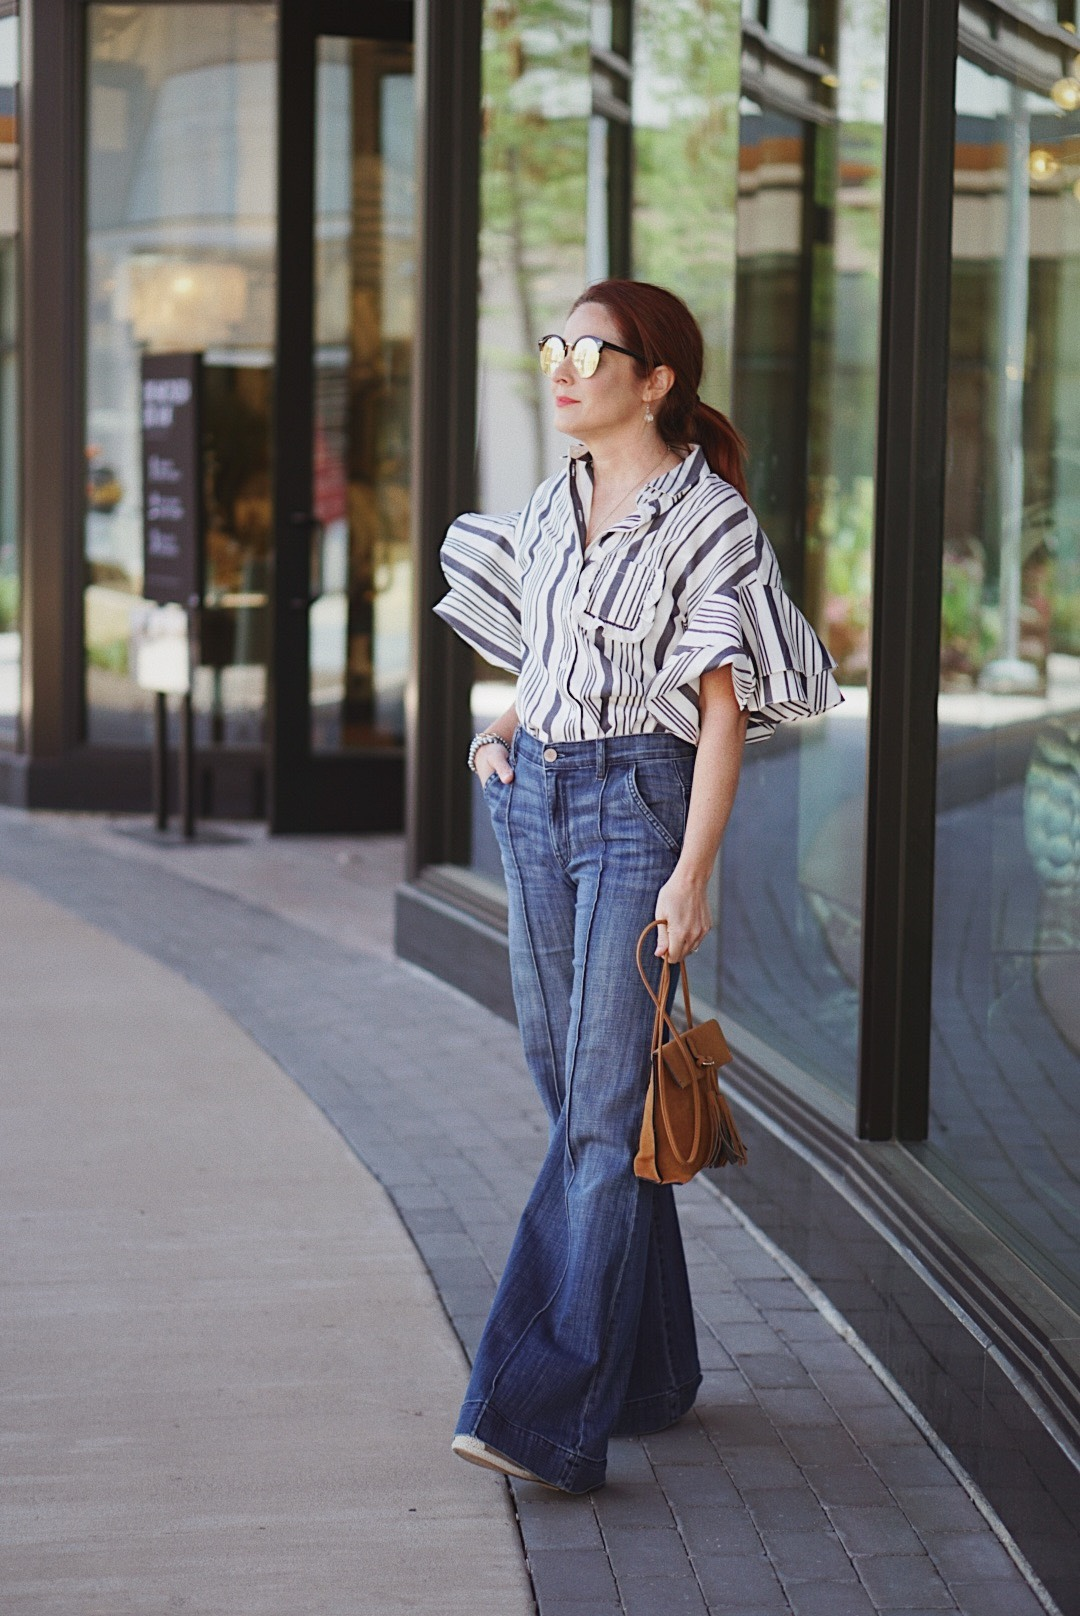 flare jean outfits, how to style wide leg jeans, stripe shirts, flutter sleeves, cognac crossbody